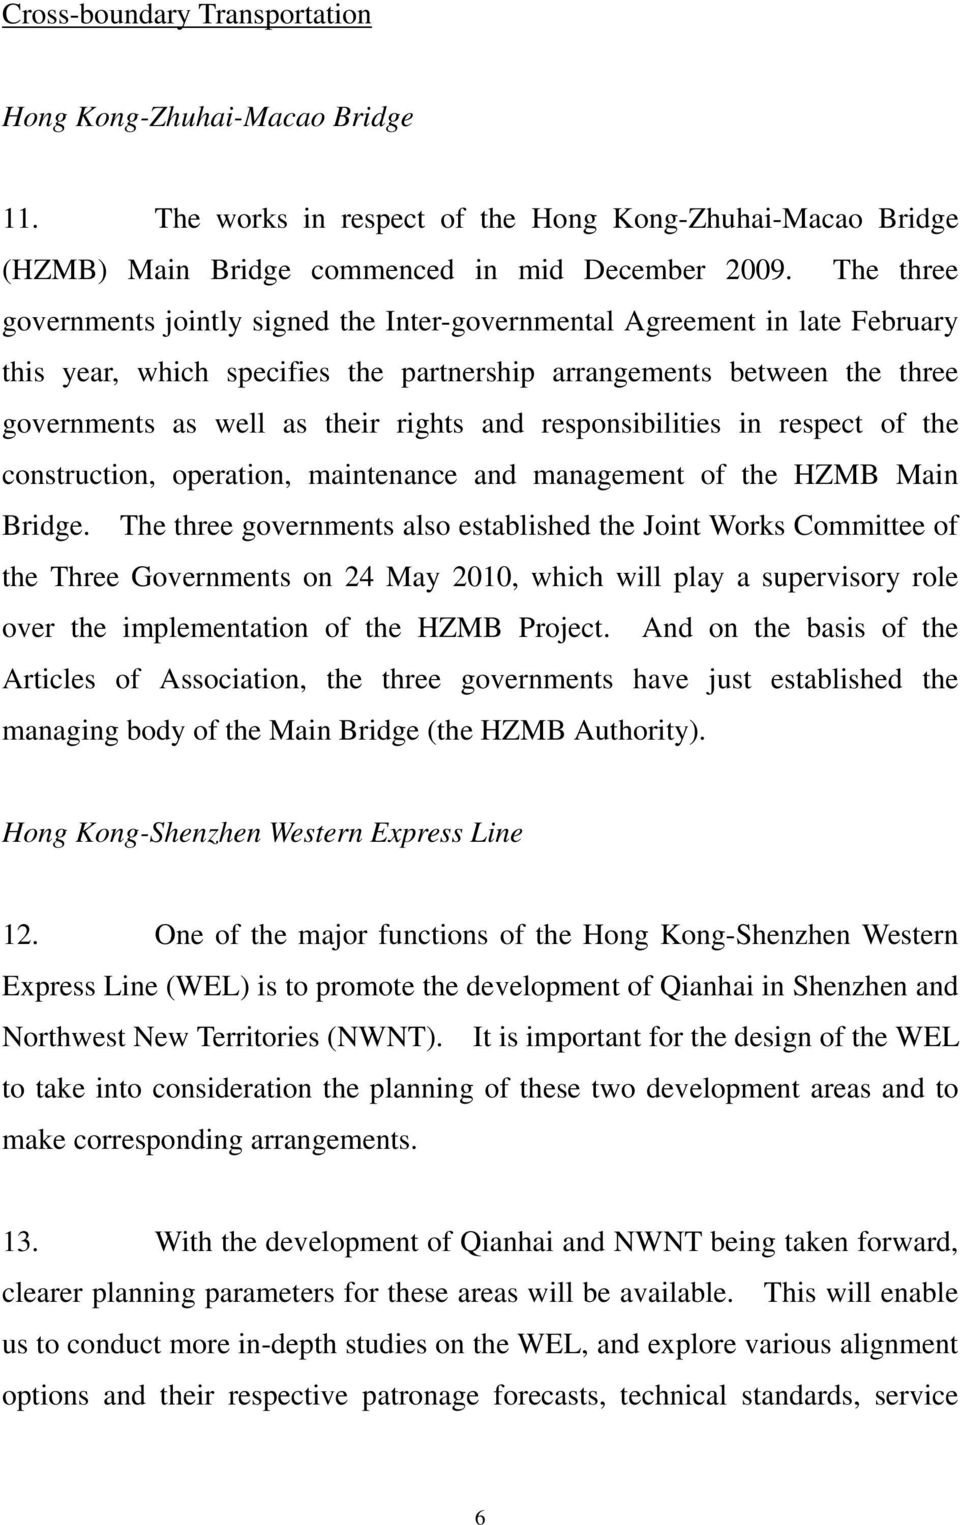 and responsibilities in respect of the construction, operation, maintenance and management of the HZMB Main Bridge.